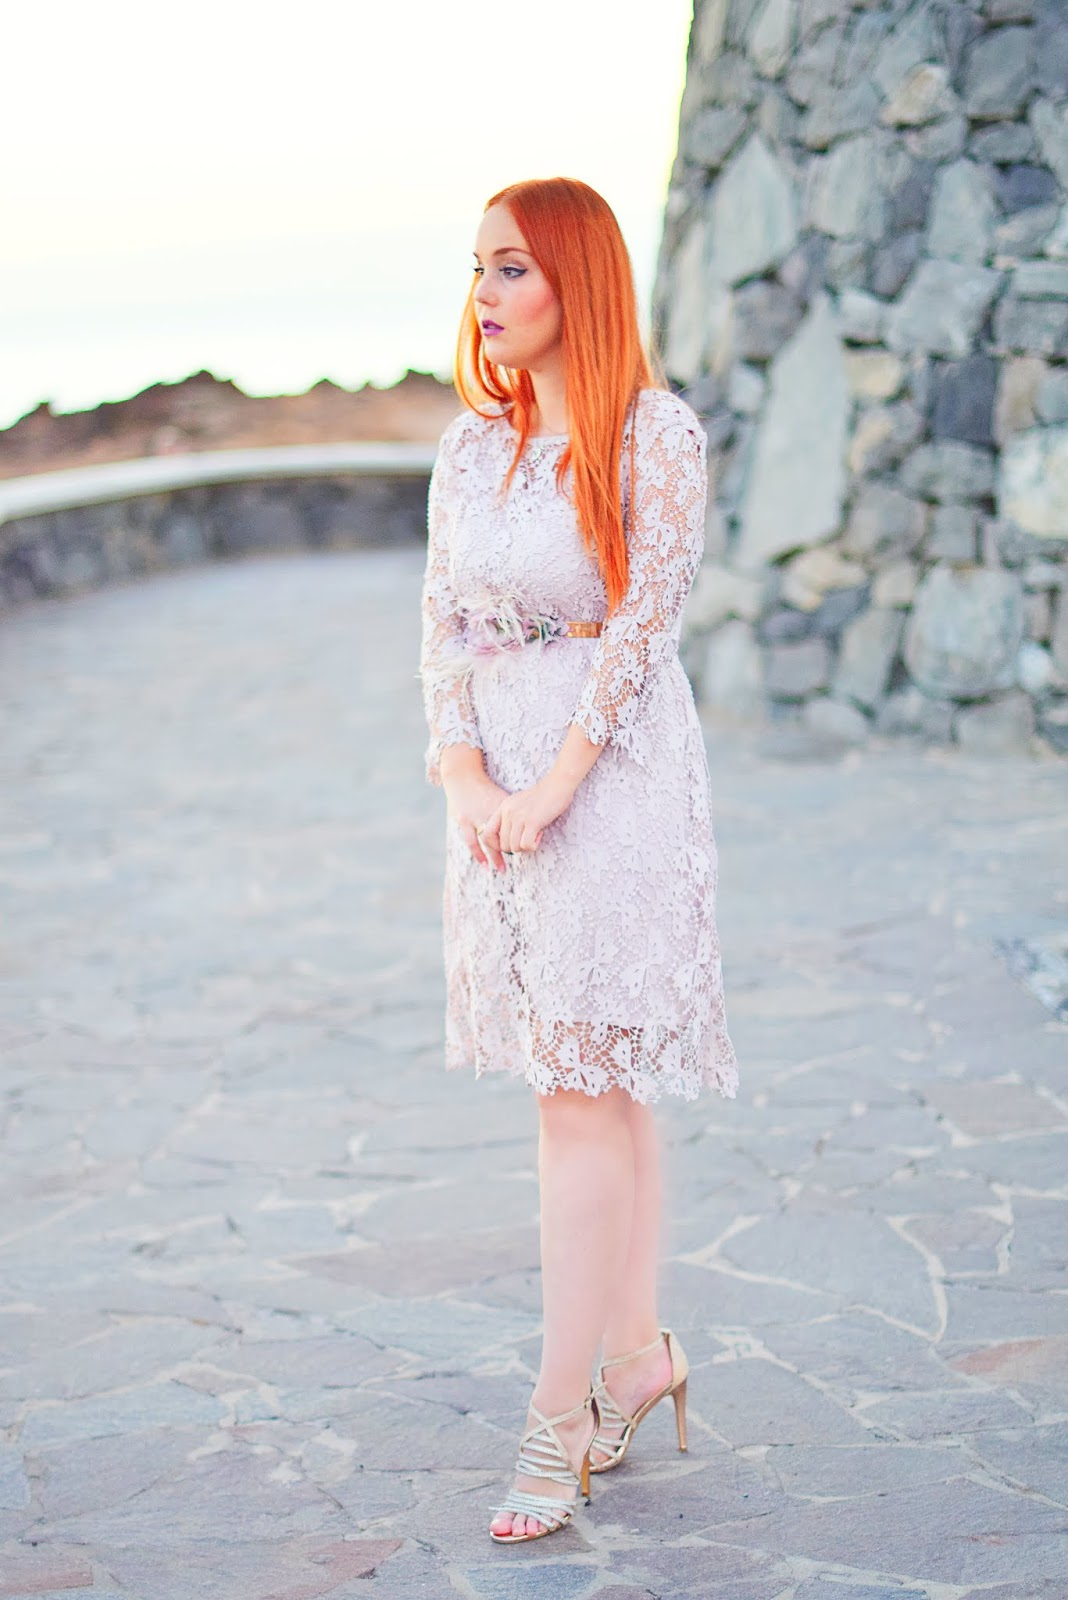 Nery hdez, evatrends, lace dress, outfit for chritsmast , look para navidad